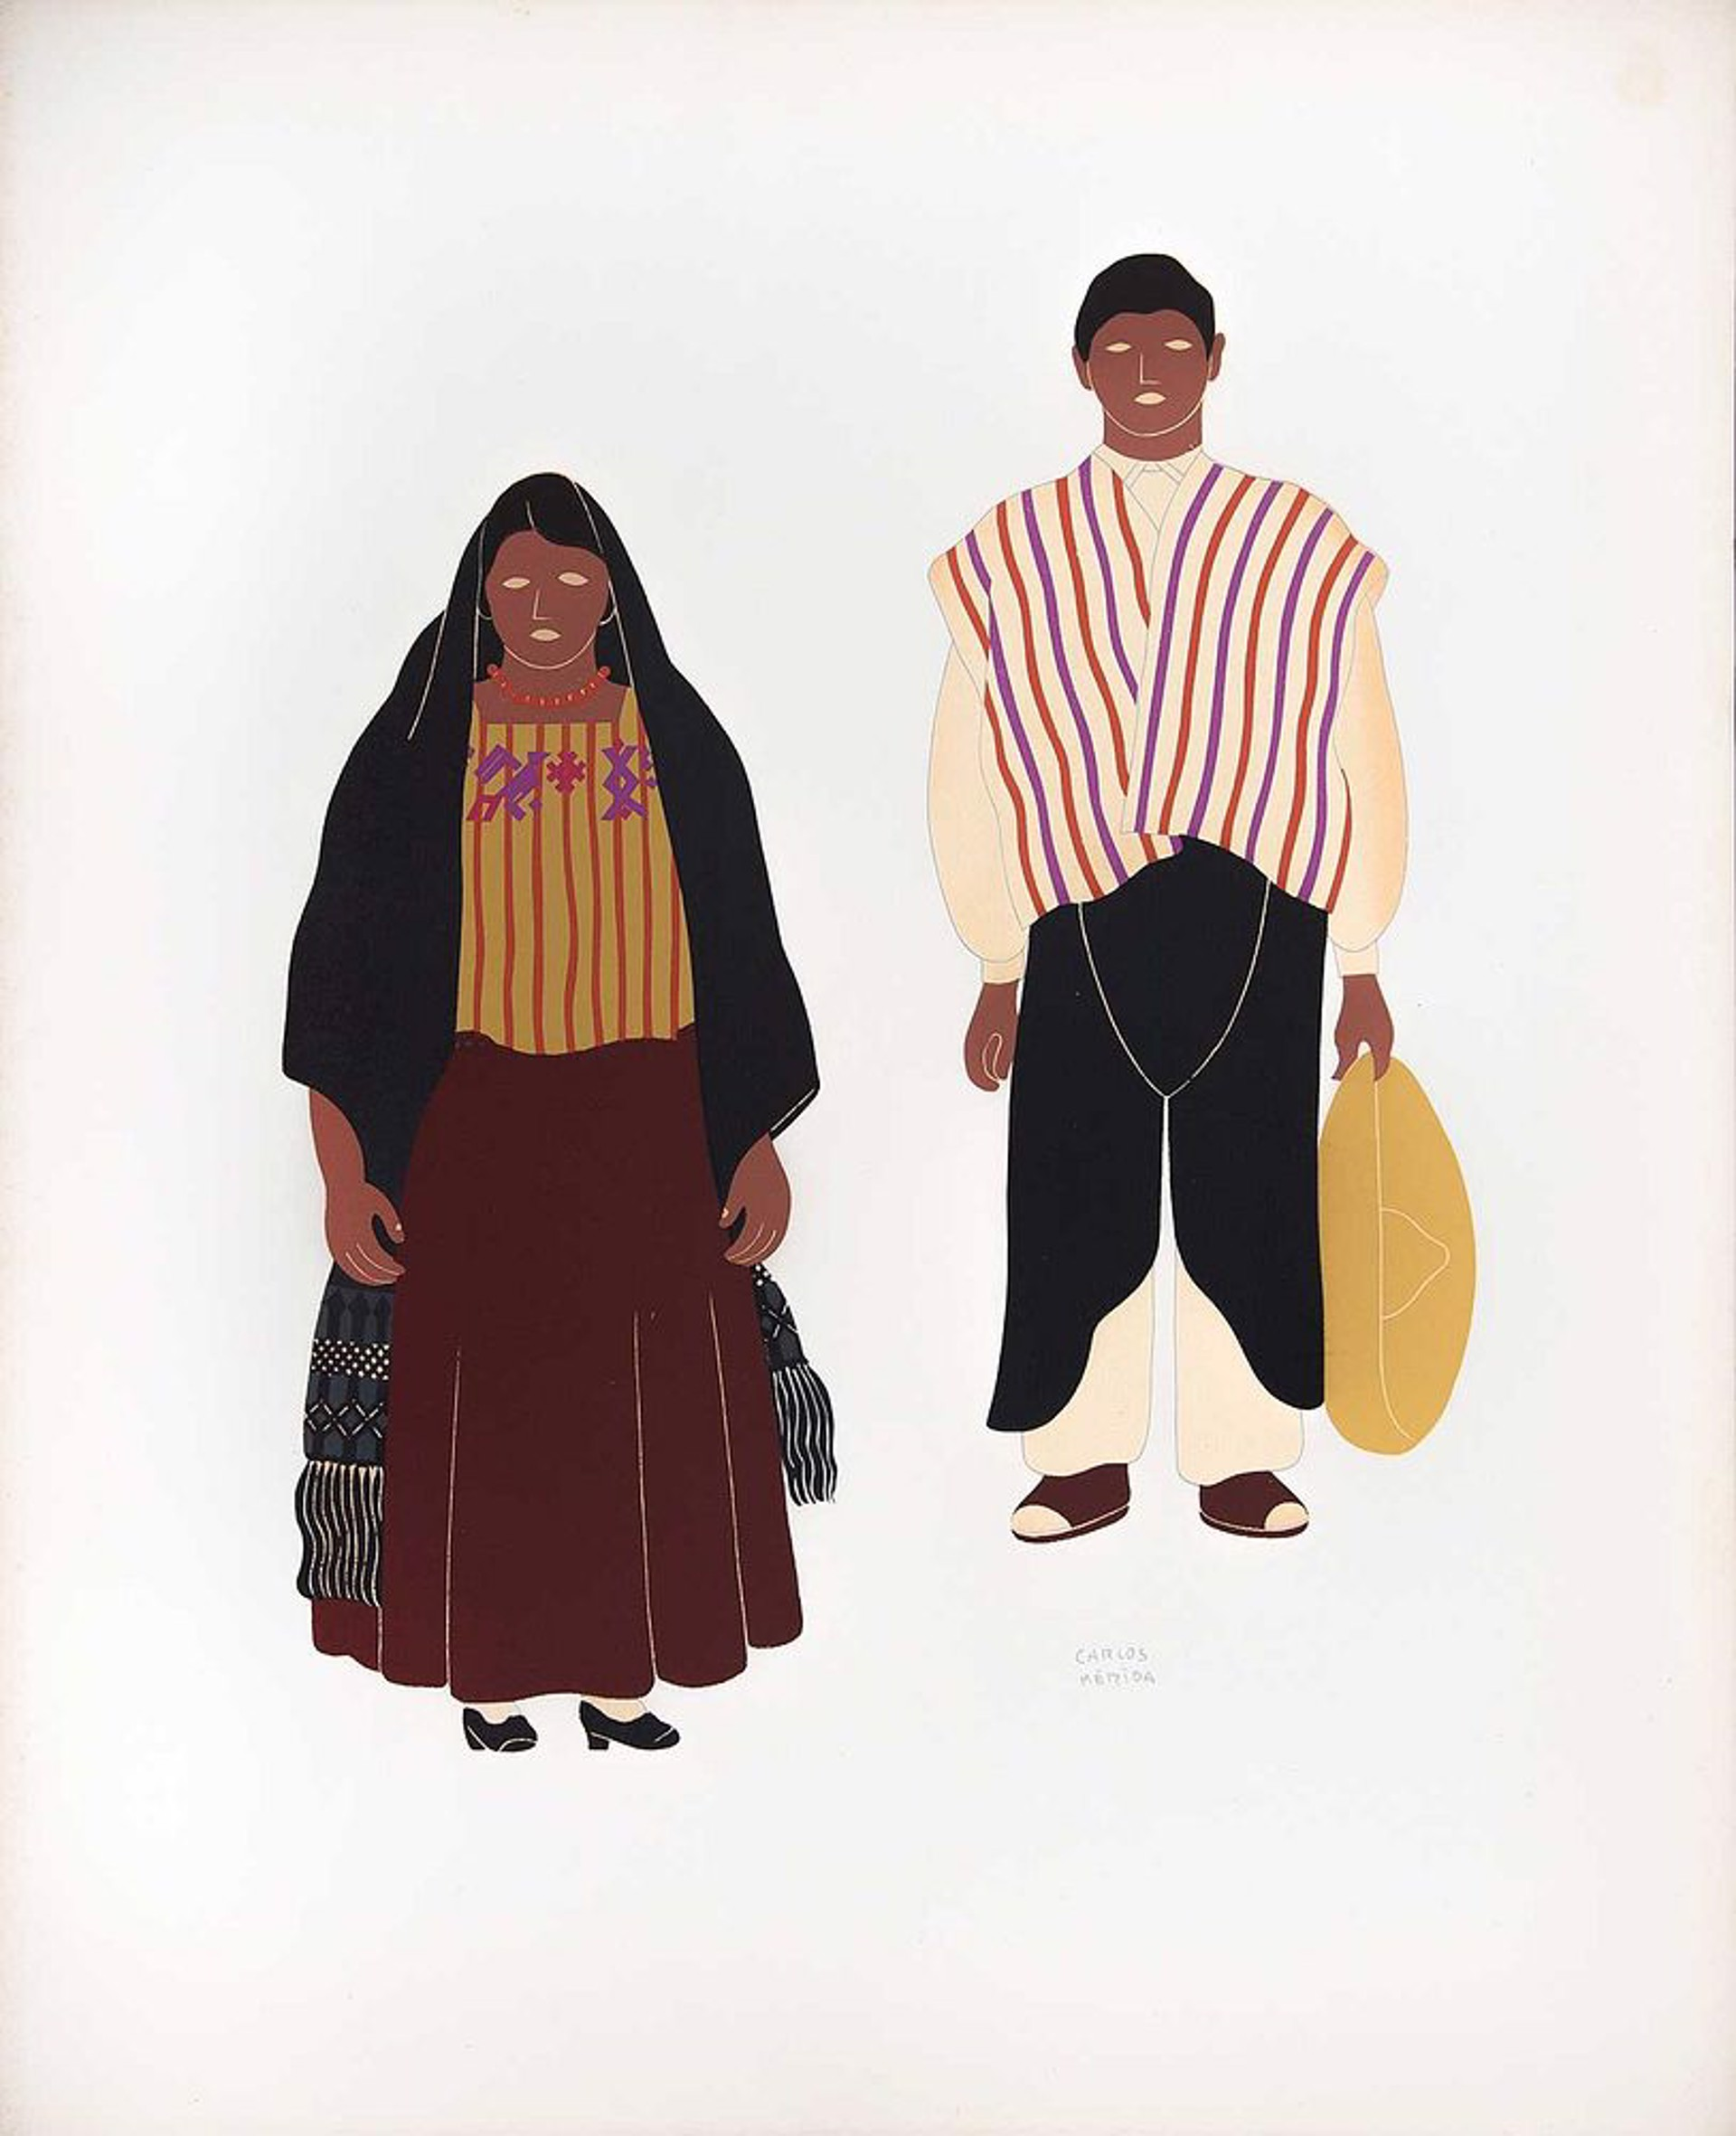 Aztecs of the State of Mexico by Carlos Mérida (1891 - 1985)